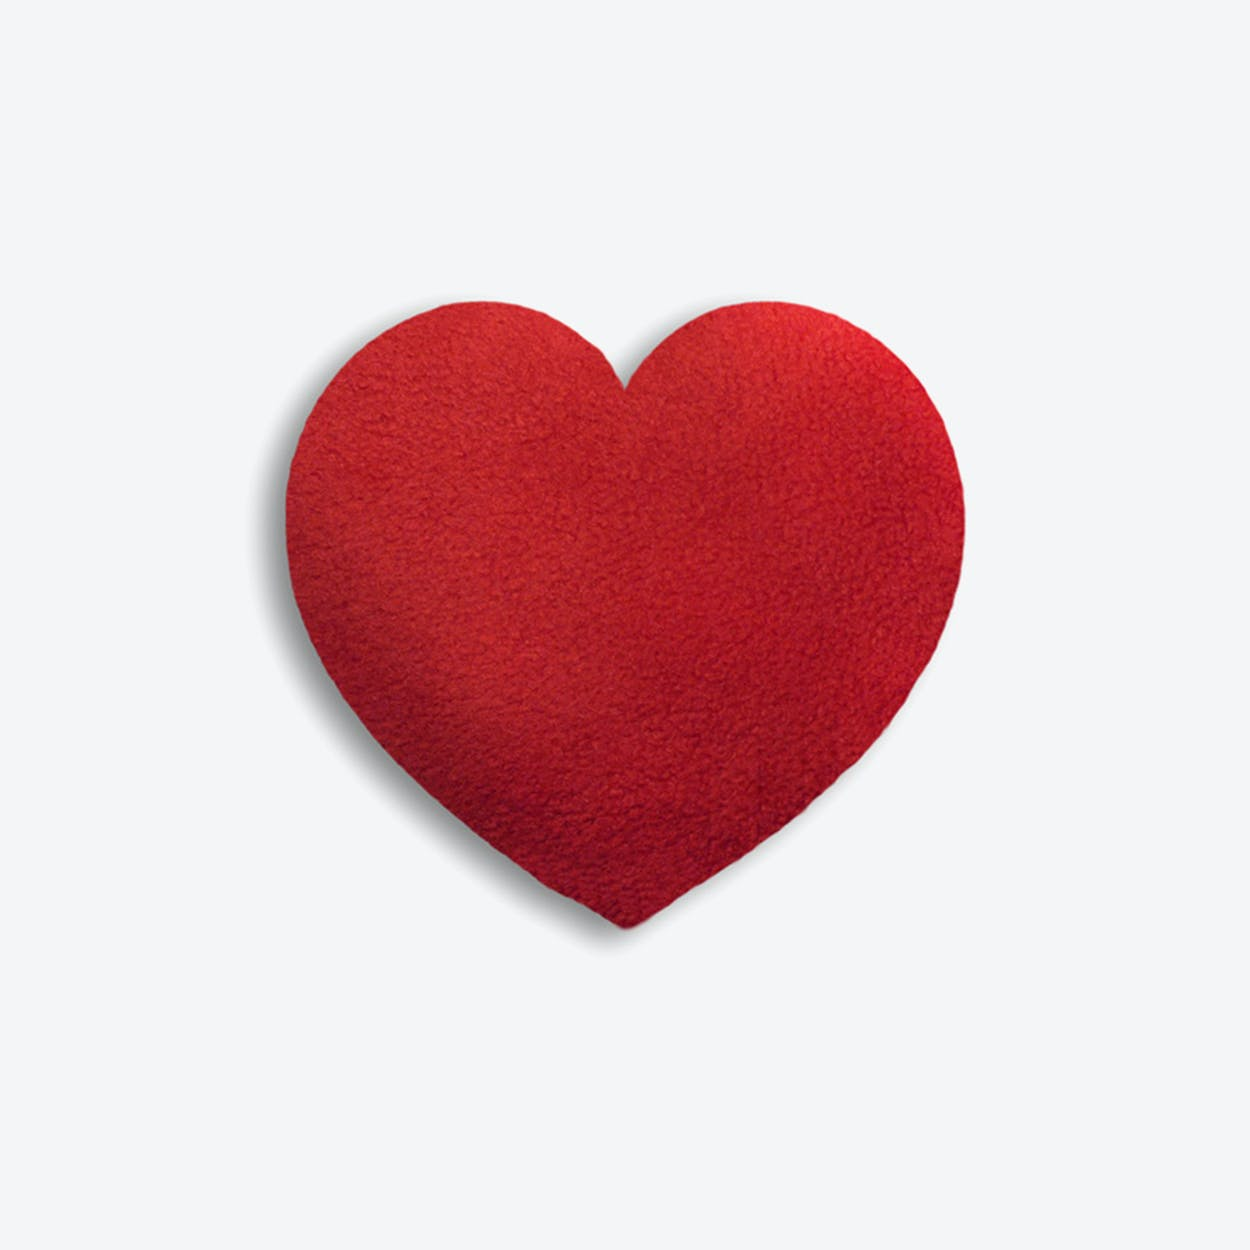 Warming Pillow, Warming Heart, Small in Red